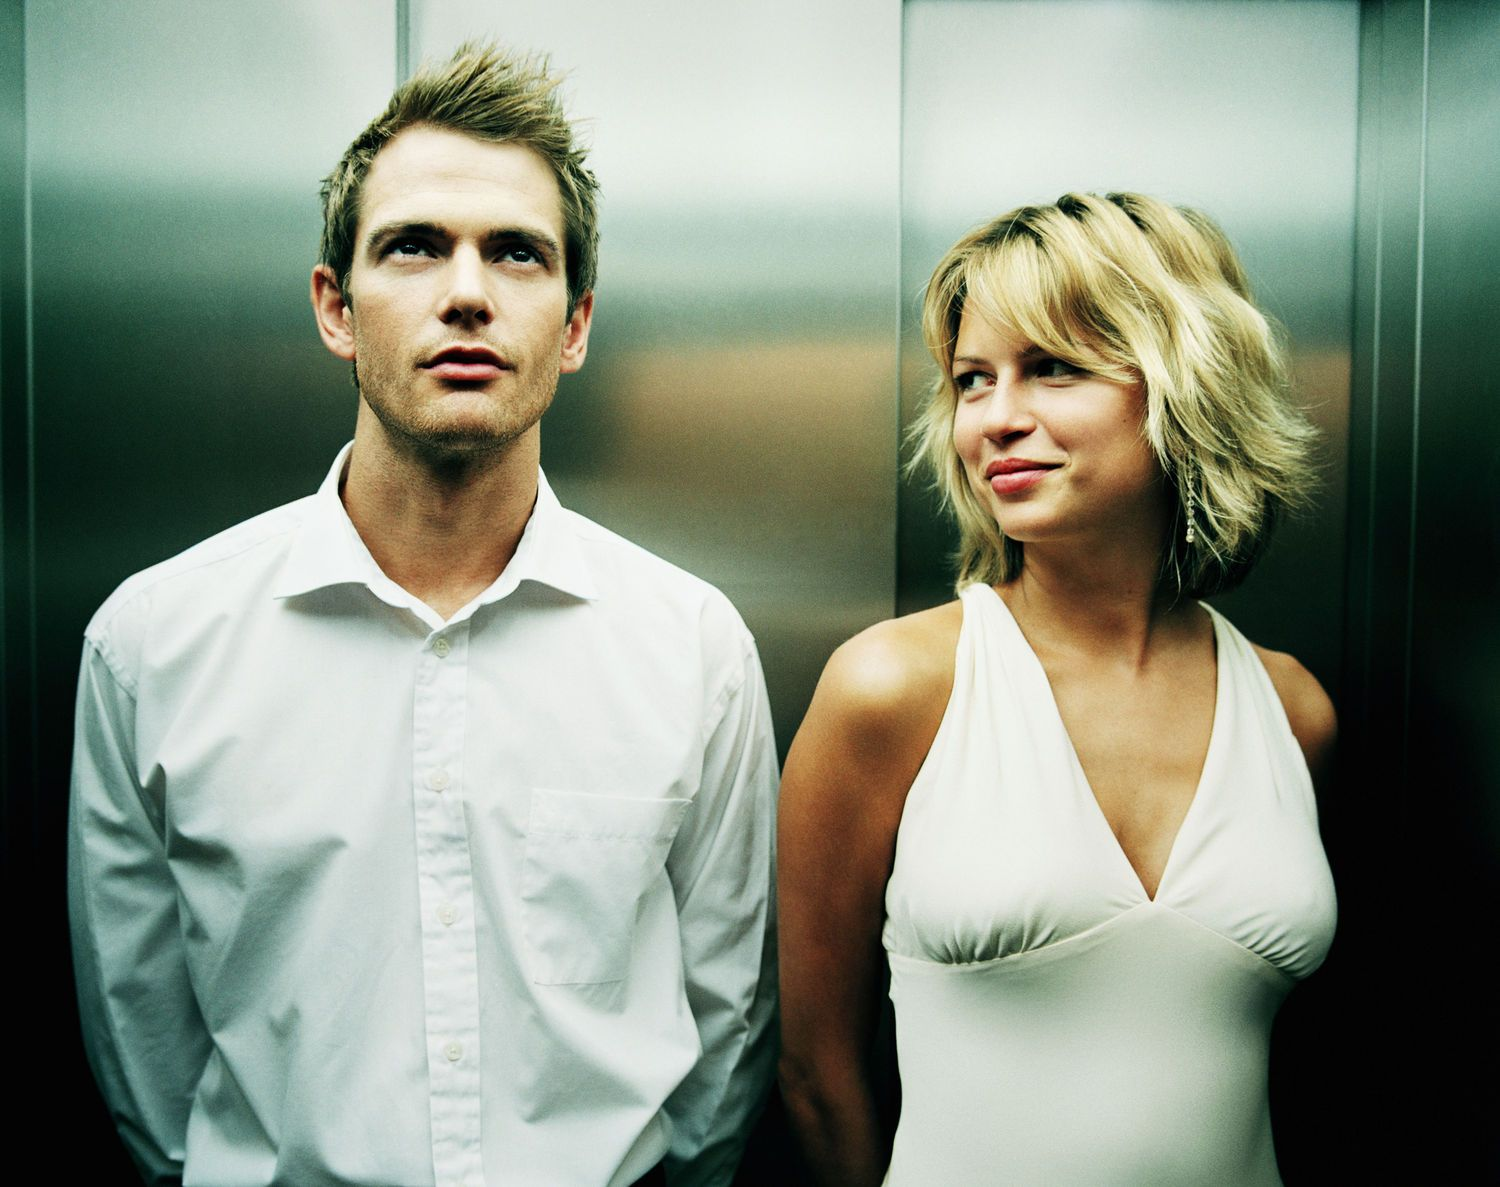 Image result for funny Men and women in the elevator